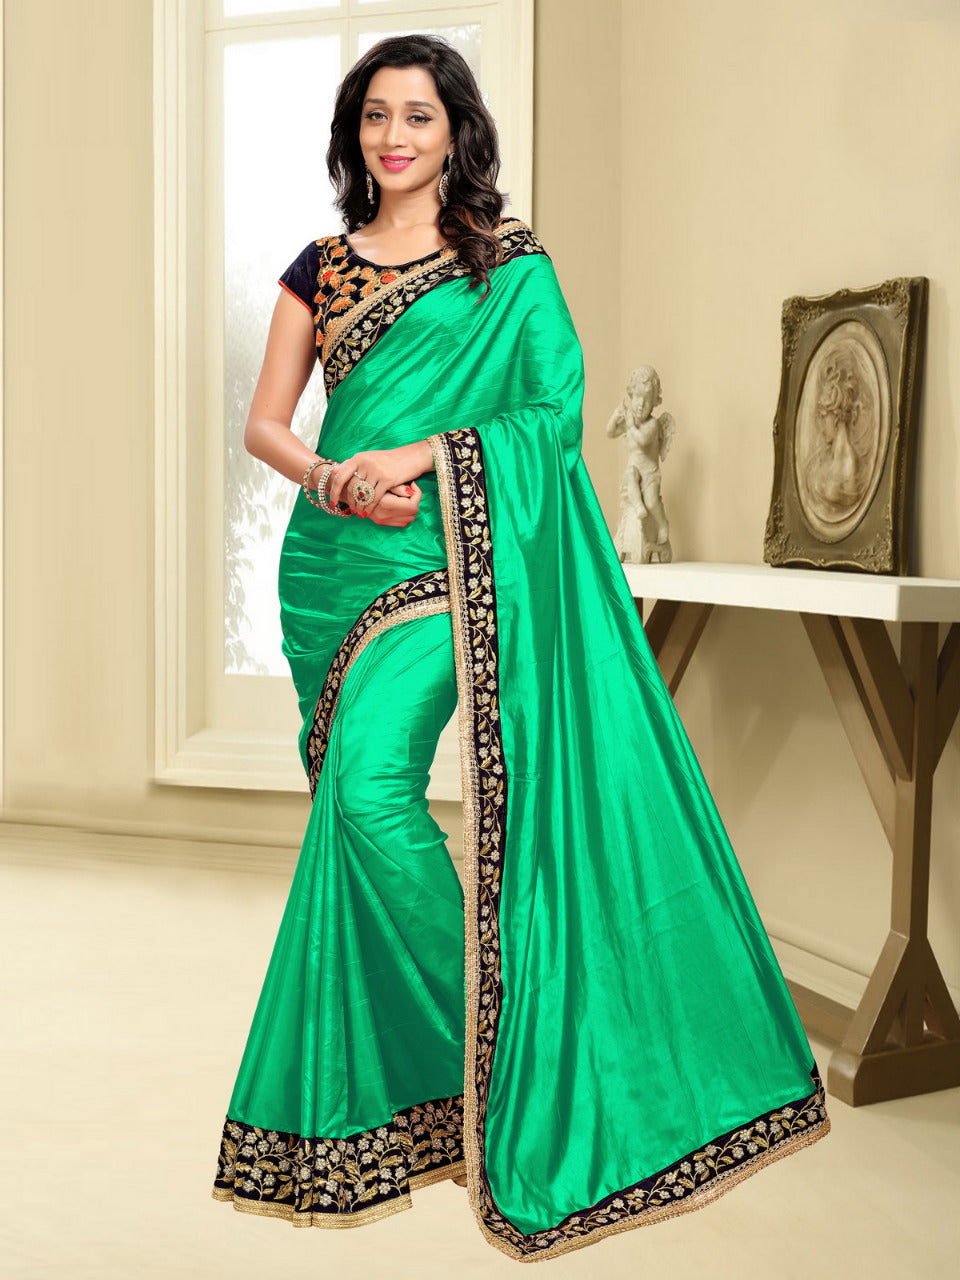 7391c161c5c2f Good Looking Green Shining Paper Silk Embroidered Dazzling Saree ...